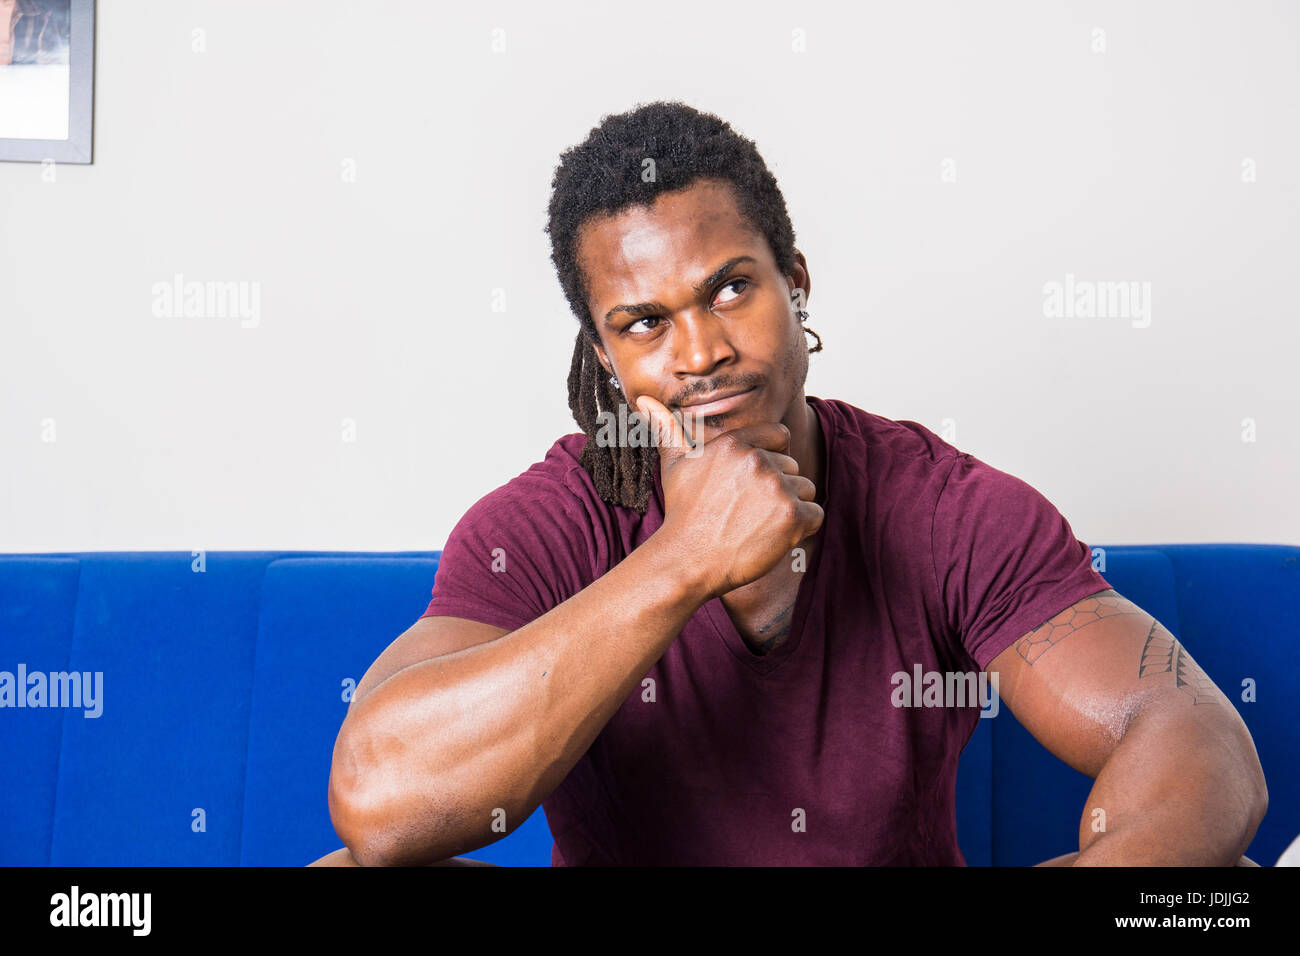 Handsome unsure, doubtful black man thinking, looking up with dubious expression on his face - Stock Image